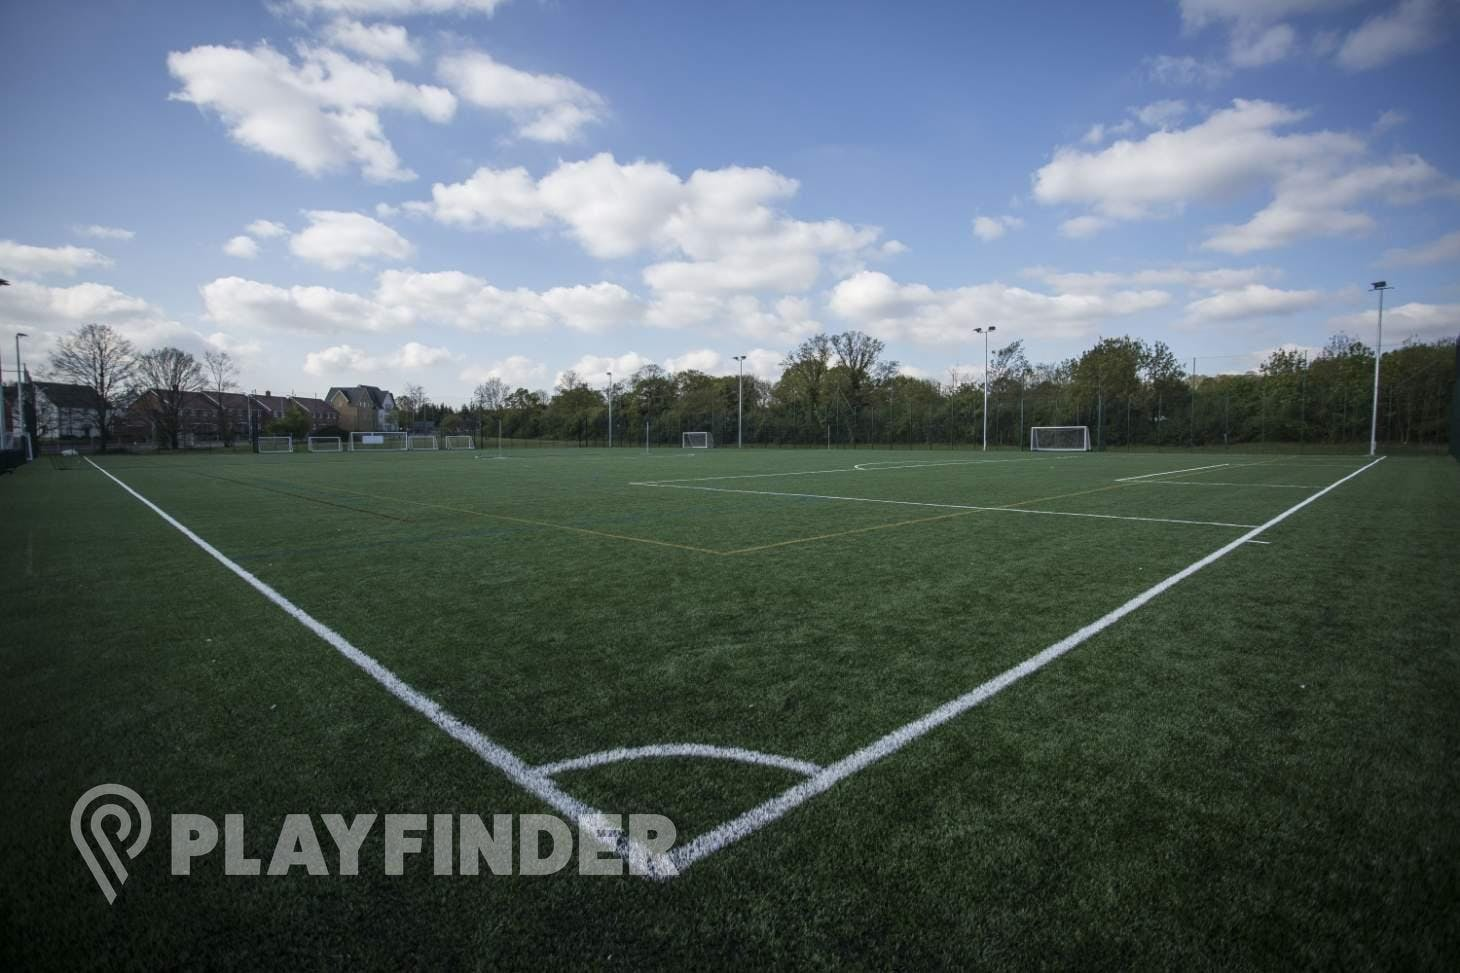 Noak Hill Sports Complex 11 a side | 3G Astroturf football pitch